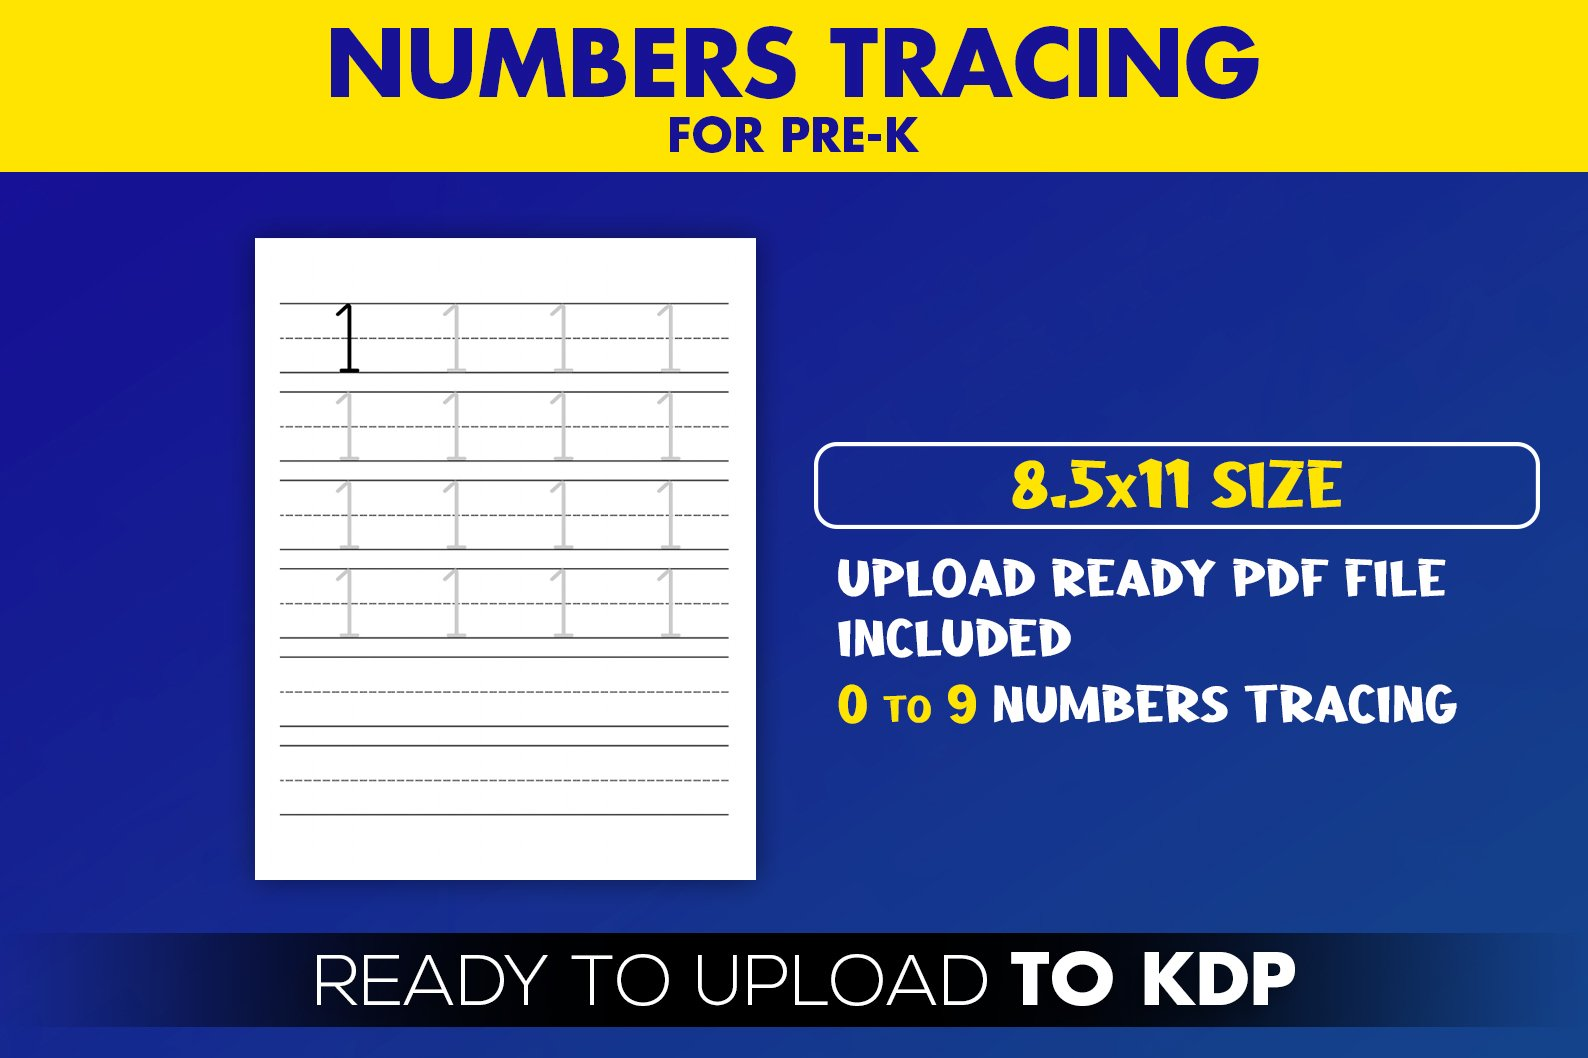 Numbers Tracing for Pre-k KDP Interior Ready to Upload example image 2